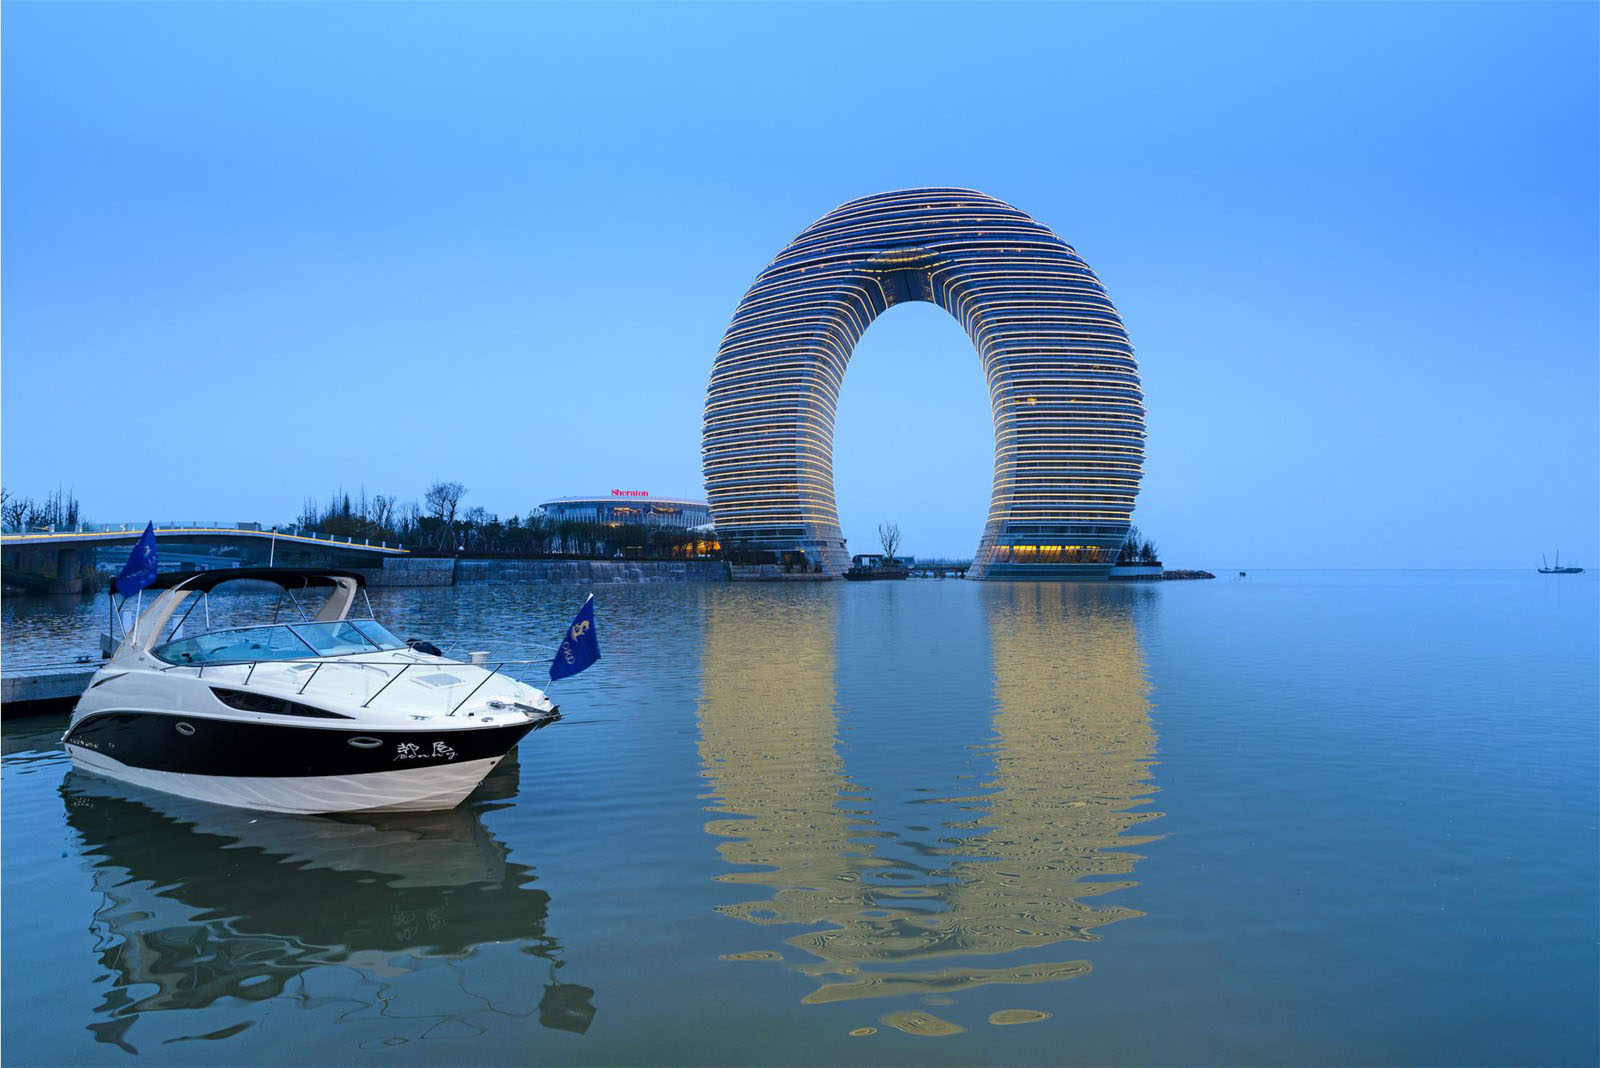 Horseshoe Shaped Hotel Resort on Lake Taihu